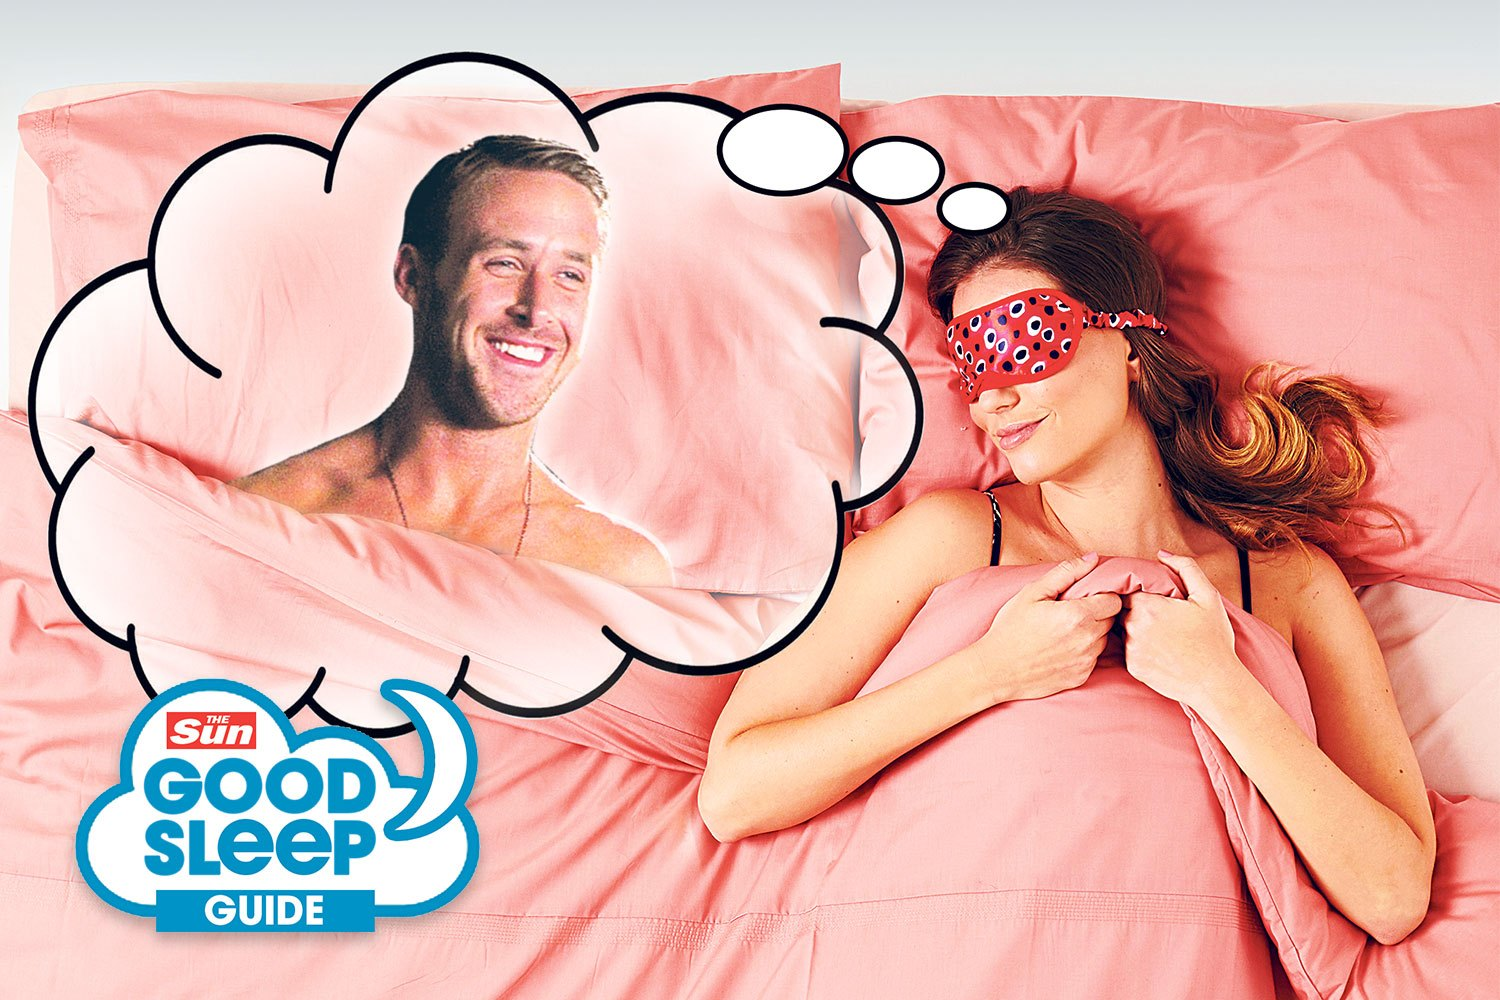 In the third instalment of our Good Sleep Guide, we look at how dreams affect our sleep quality